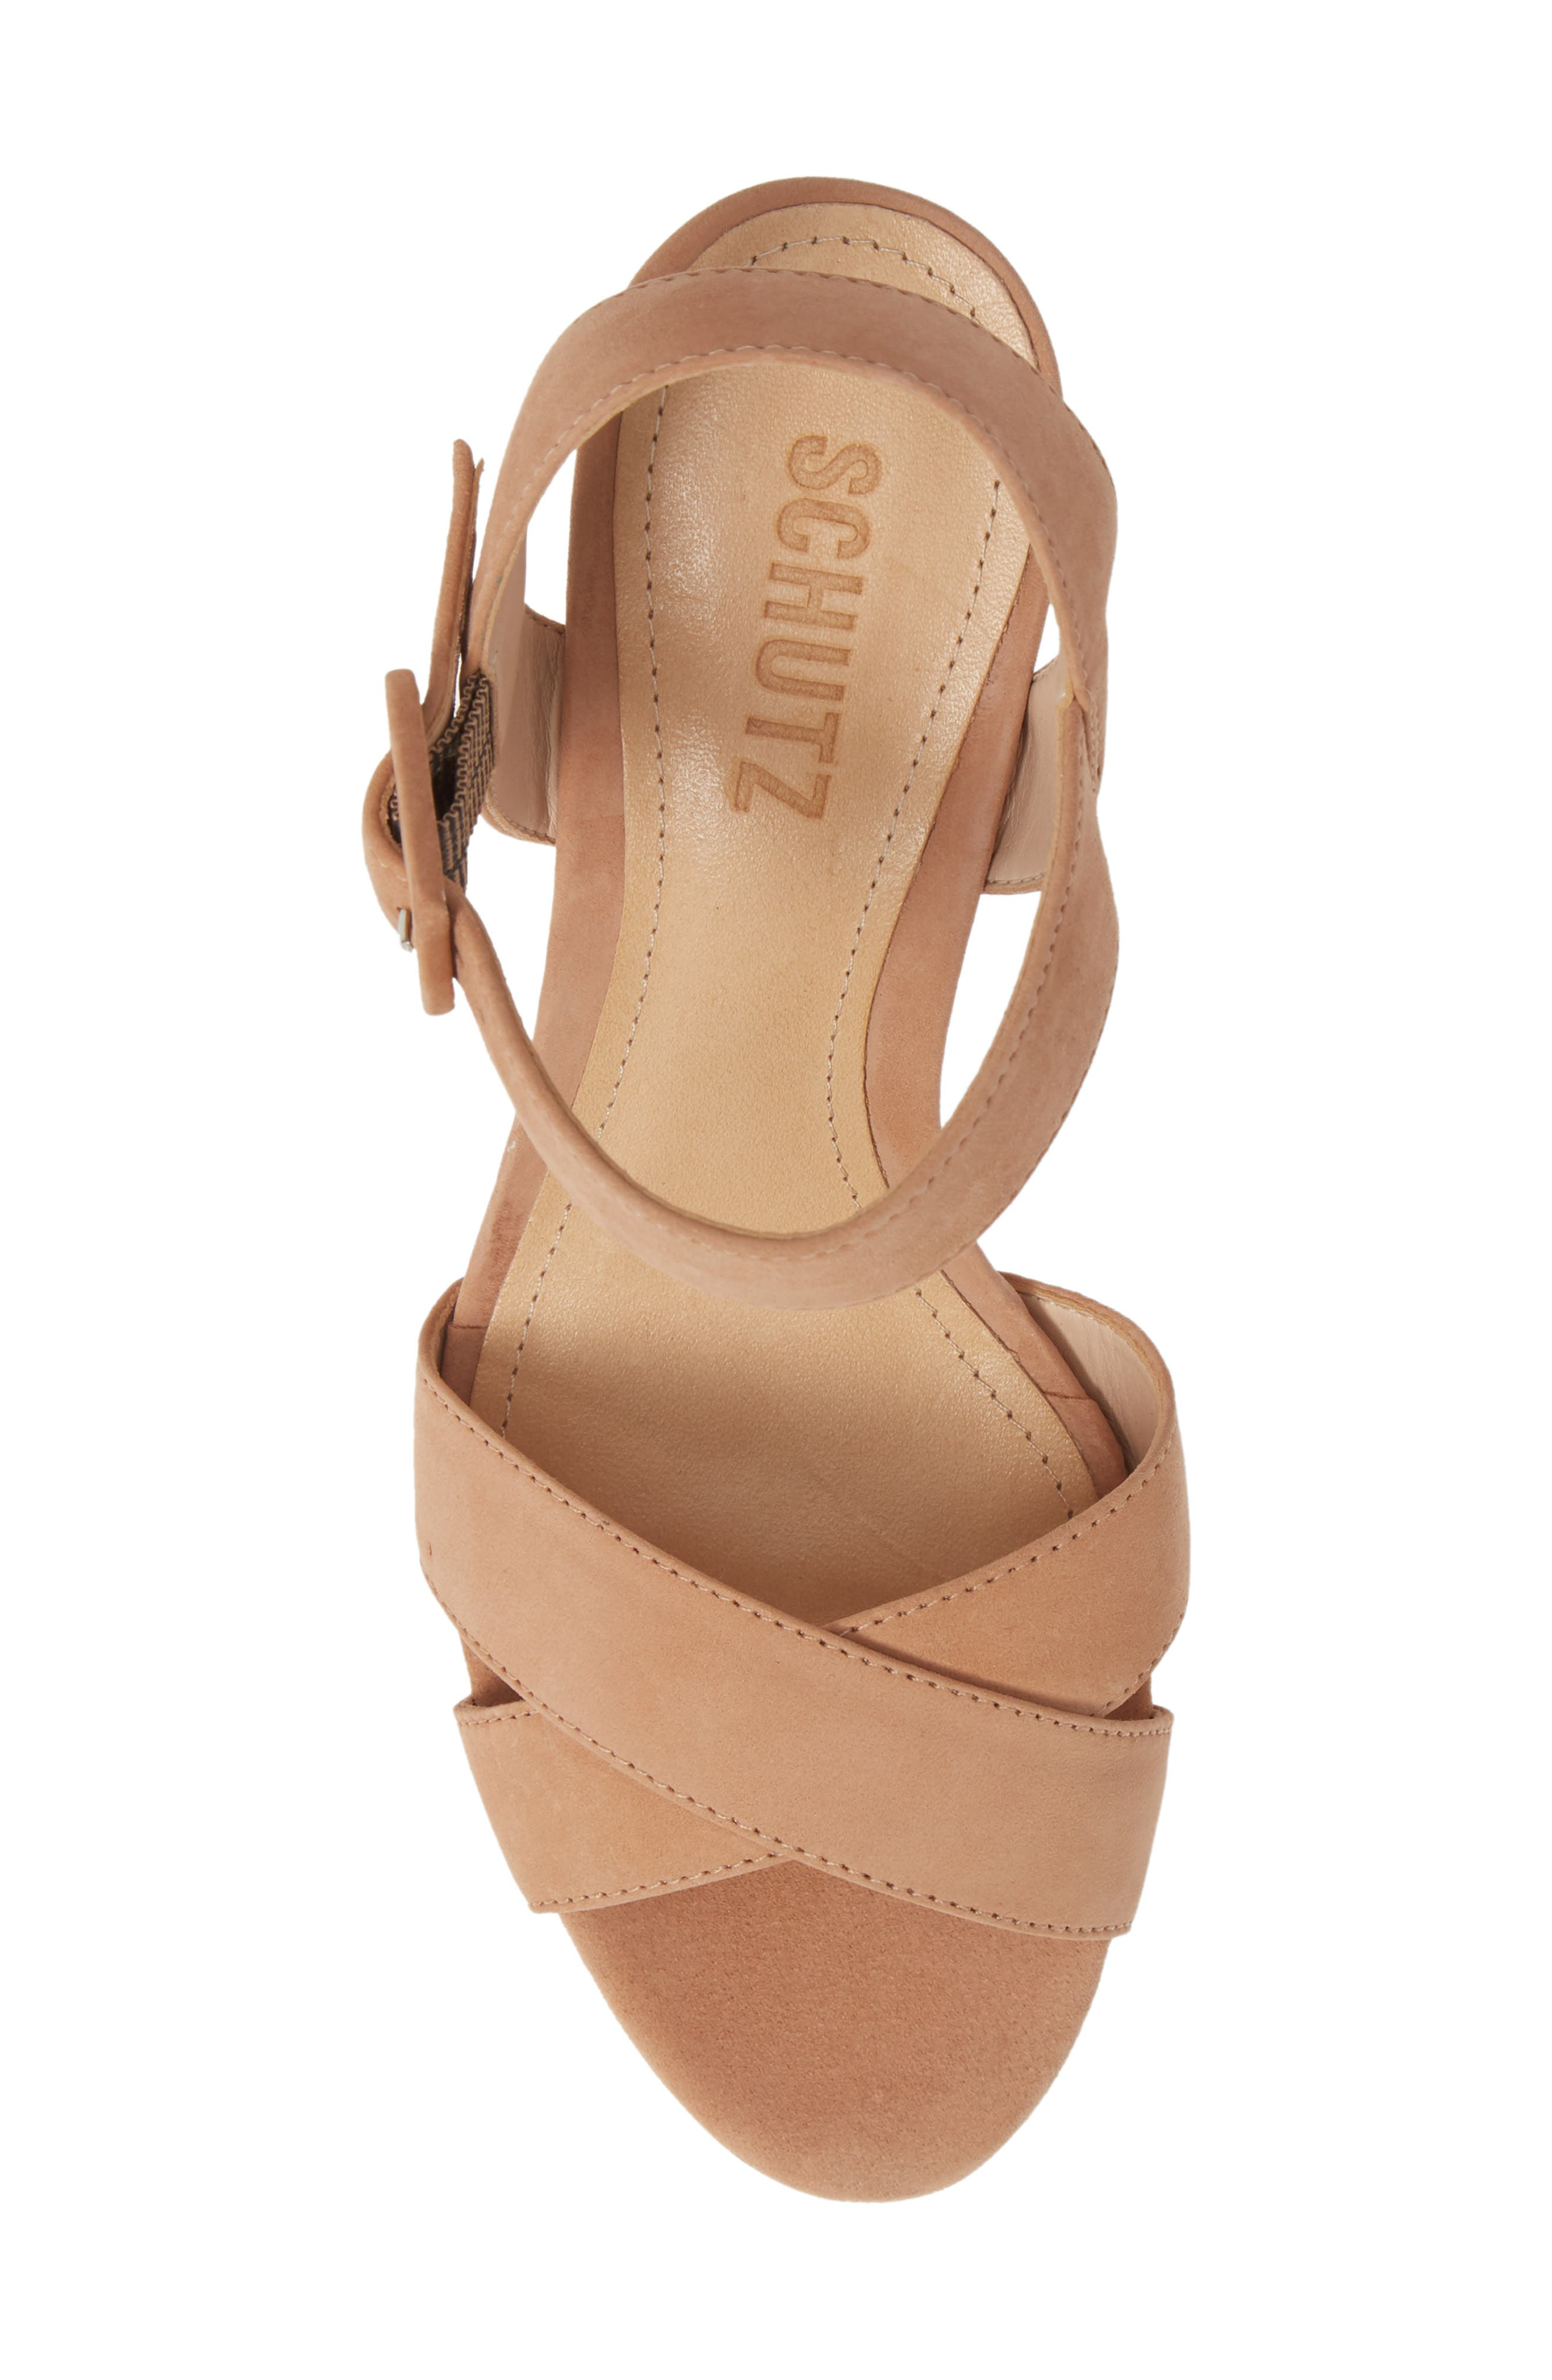 Tulia Sandal,                             Alternate thumbnail 5, color,                             HONEY BEIGE NUBUCK